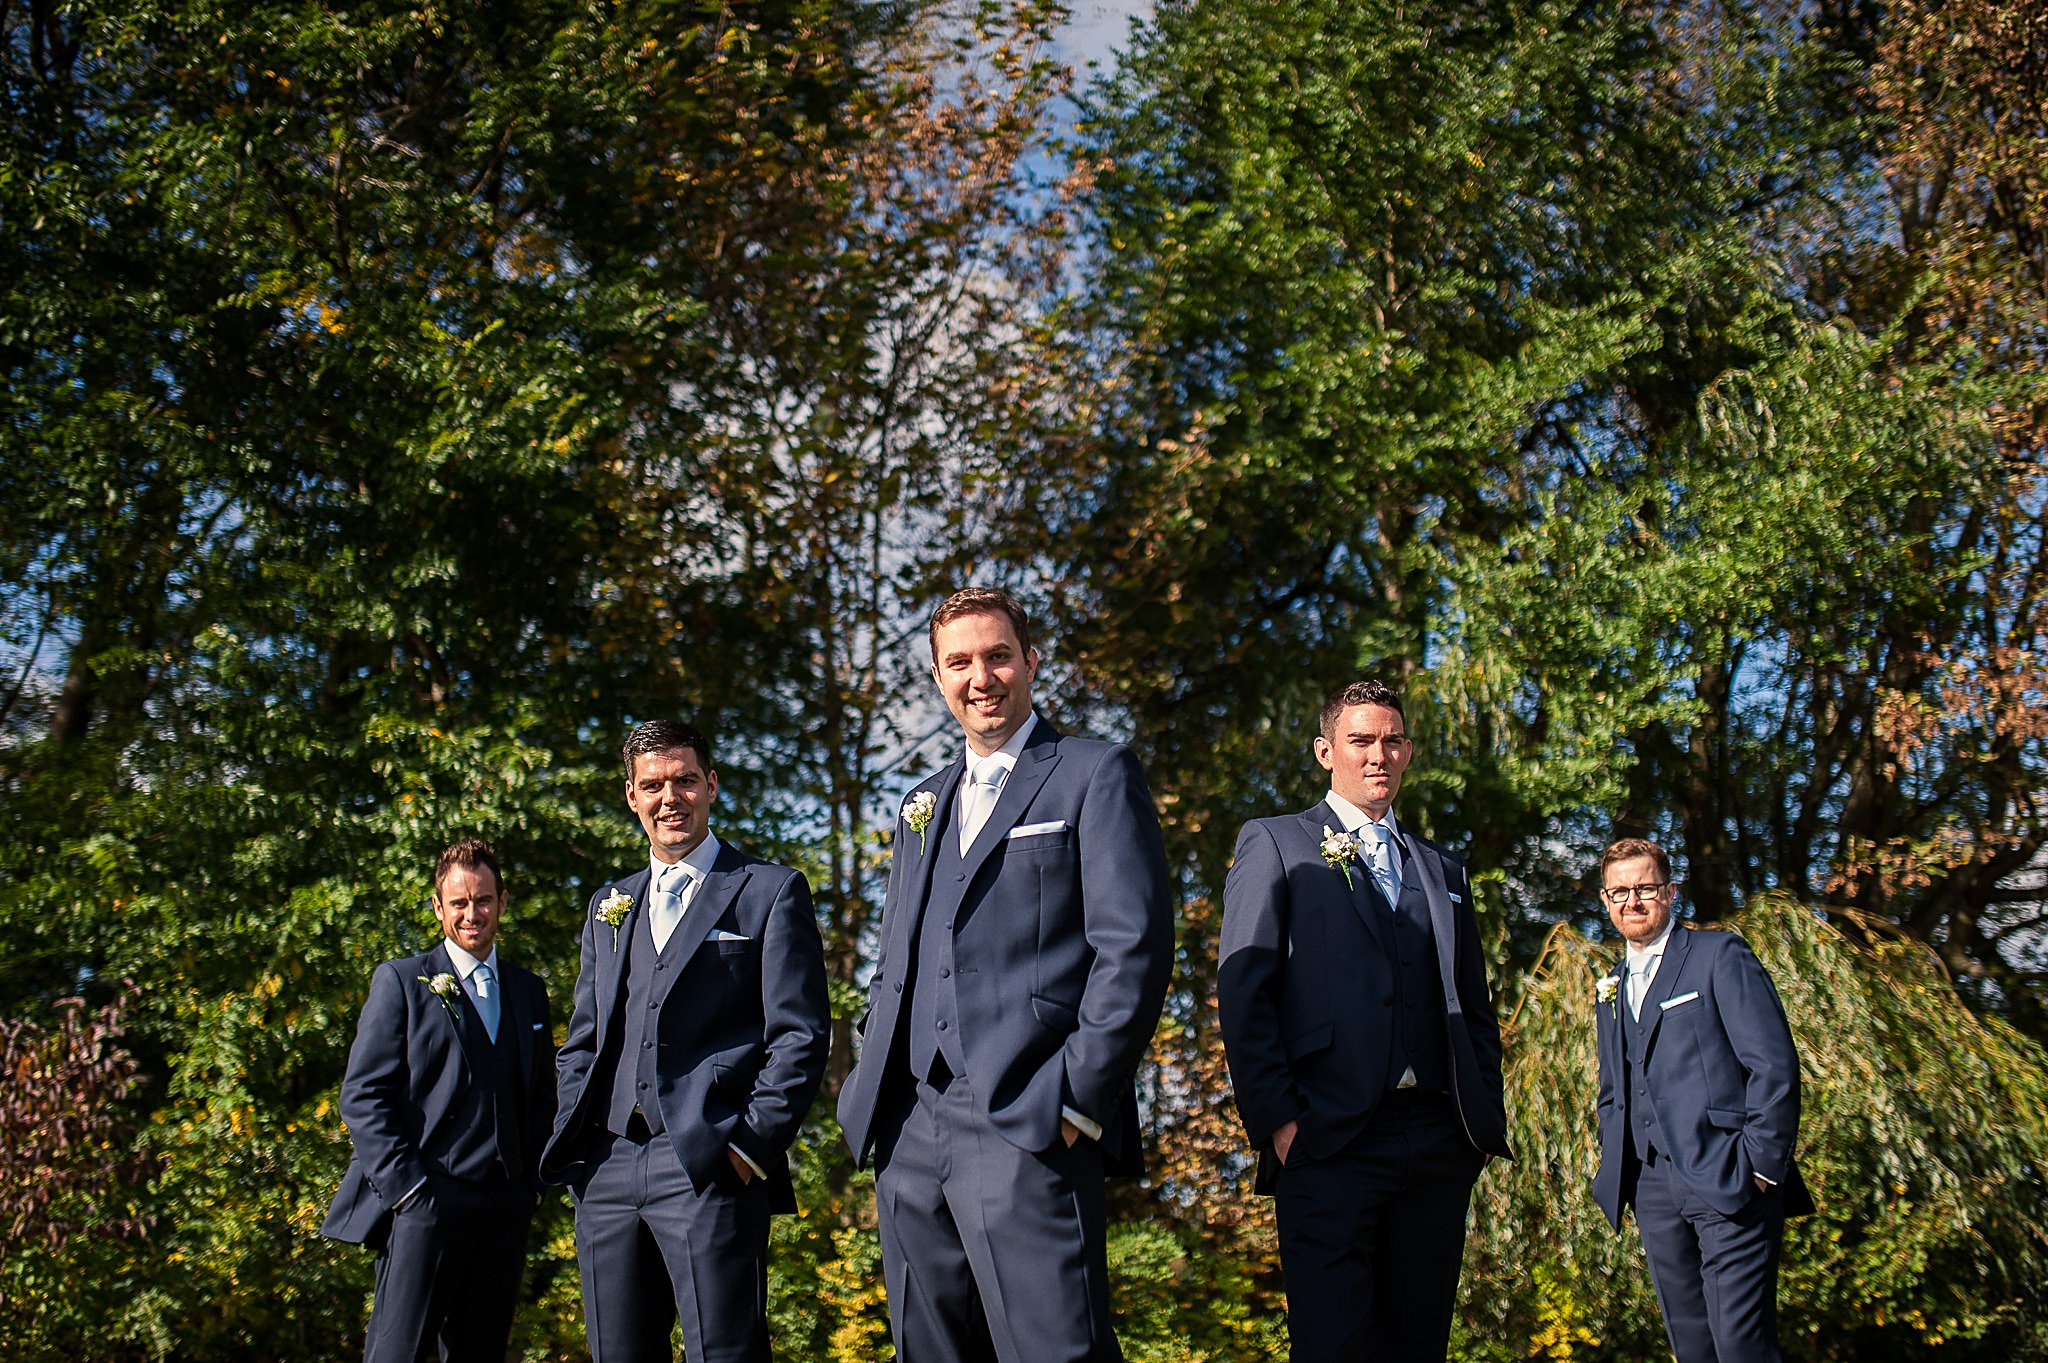 Wedding Photographer Hertfordshire